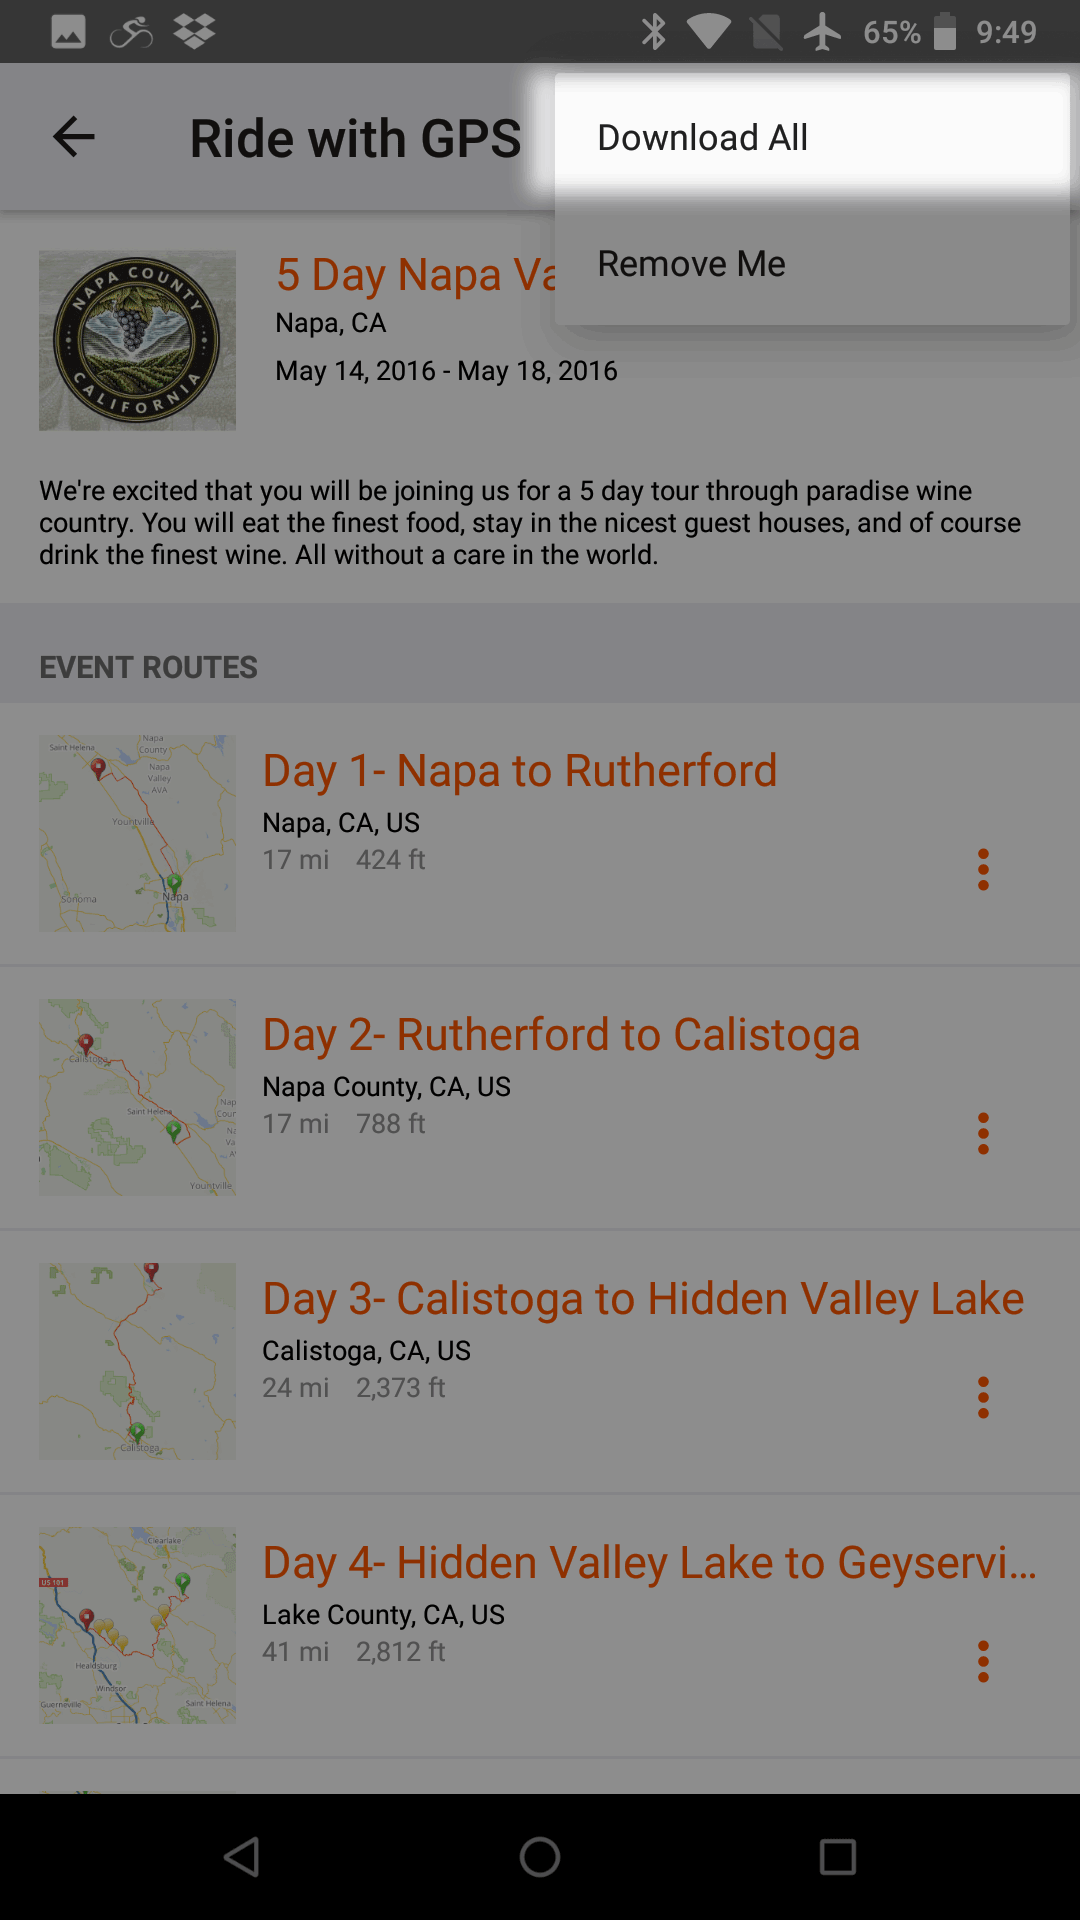 Offline Maps on Android | Ride With GPS Help